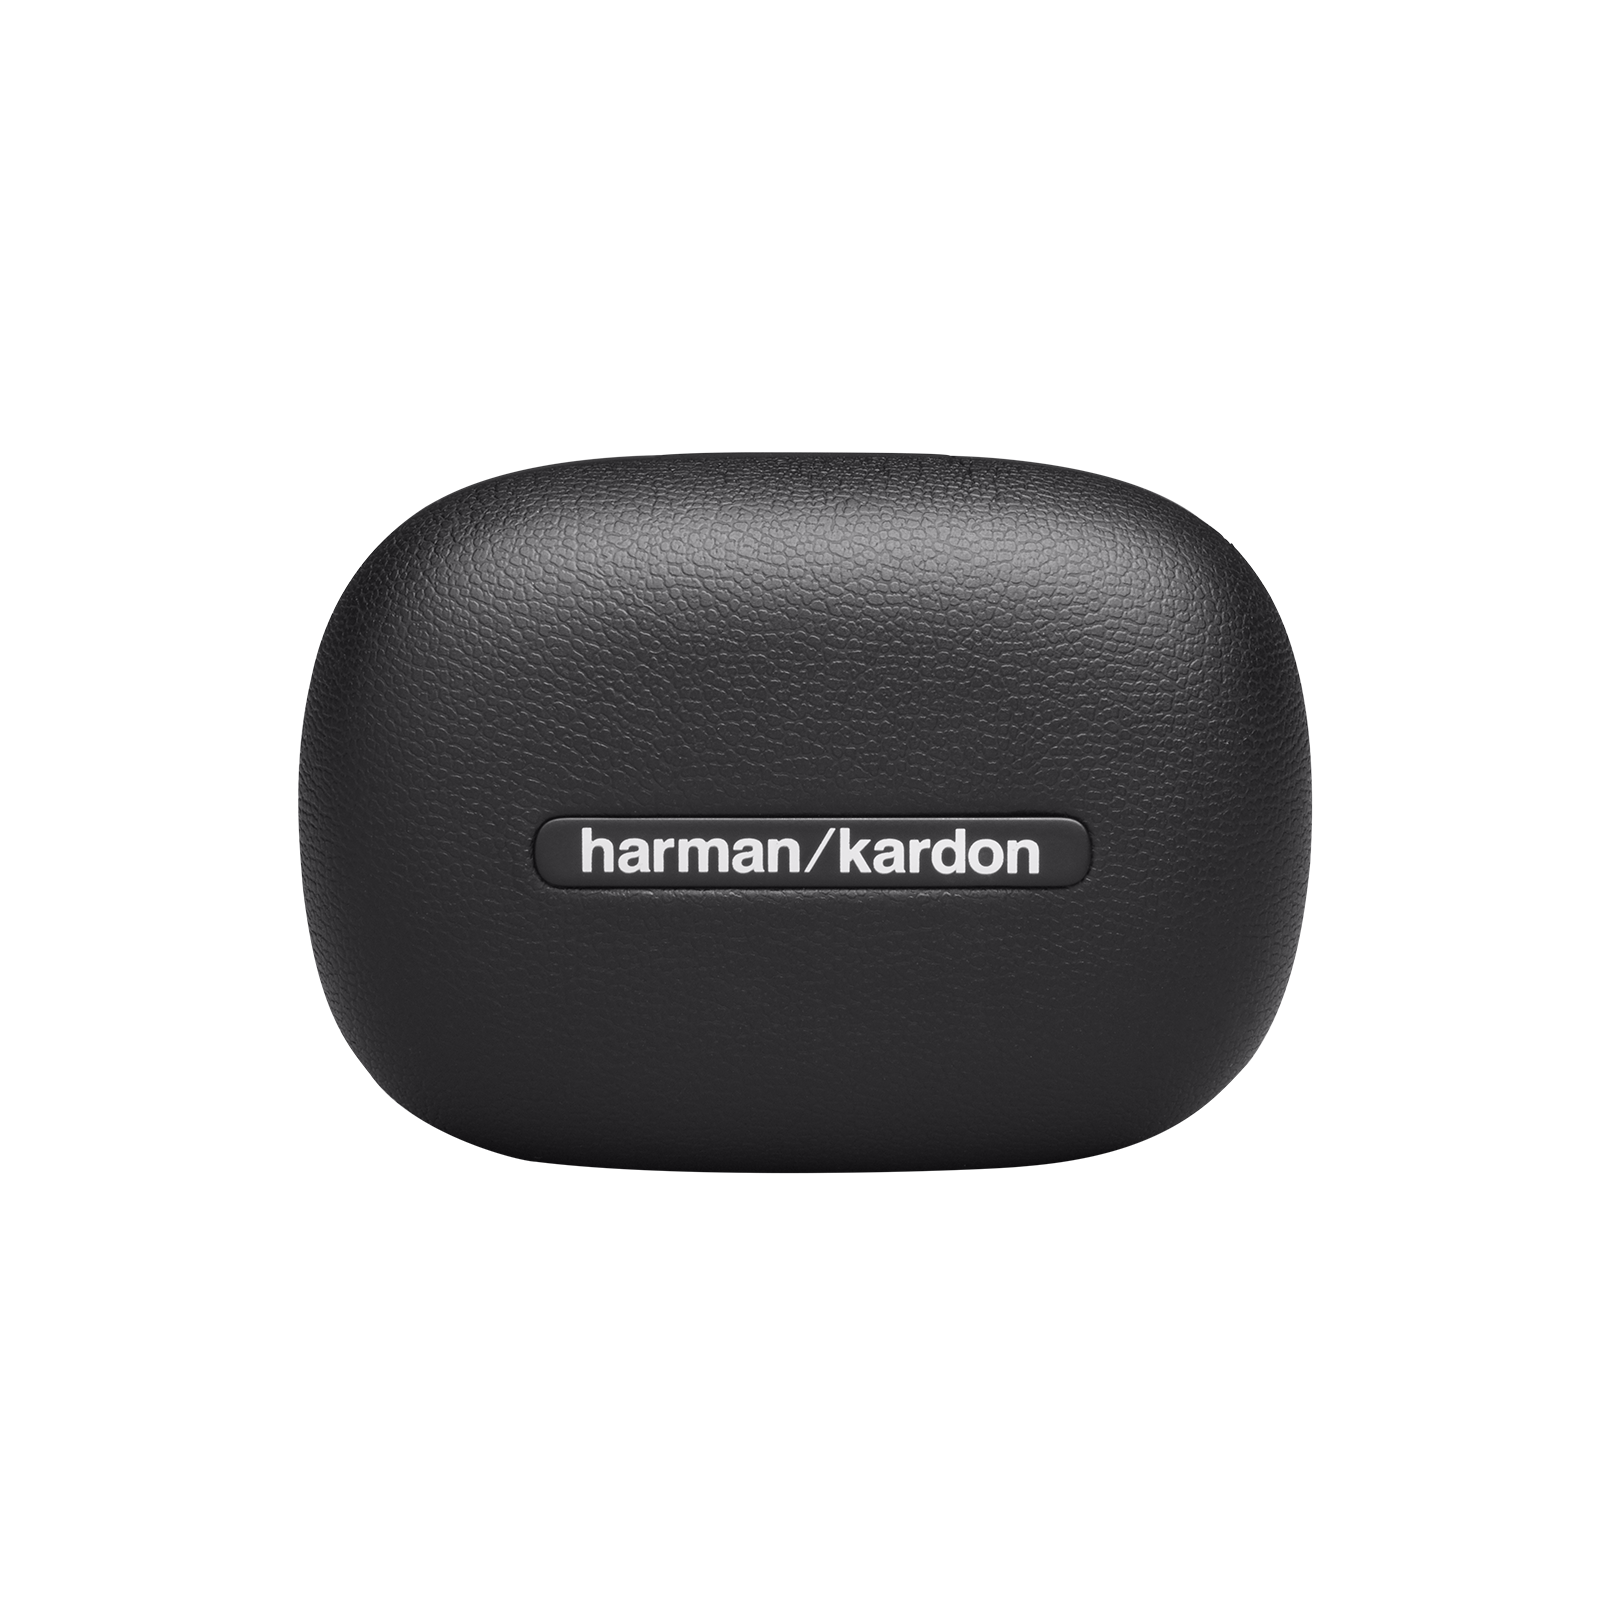 Harman Kardon FLY TWS - Black - True Wireless in-ear headphones - Detailshot 7